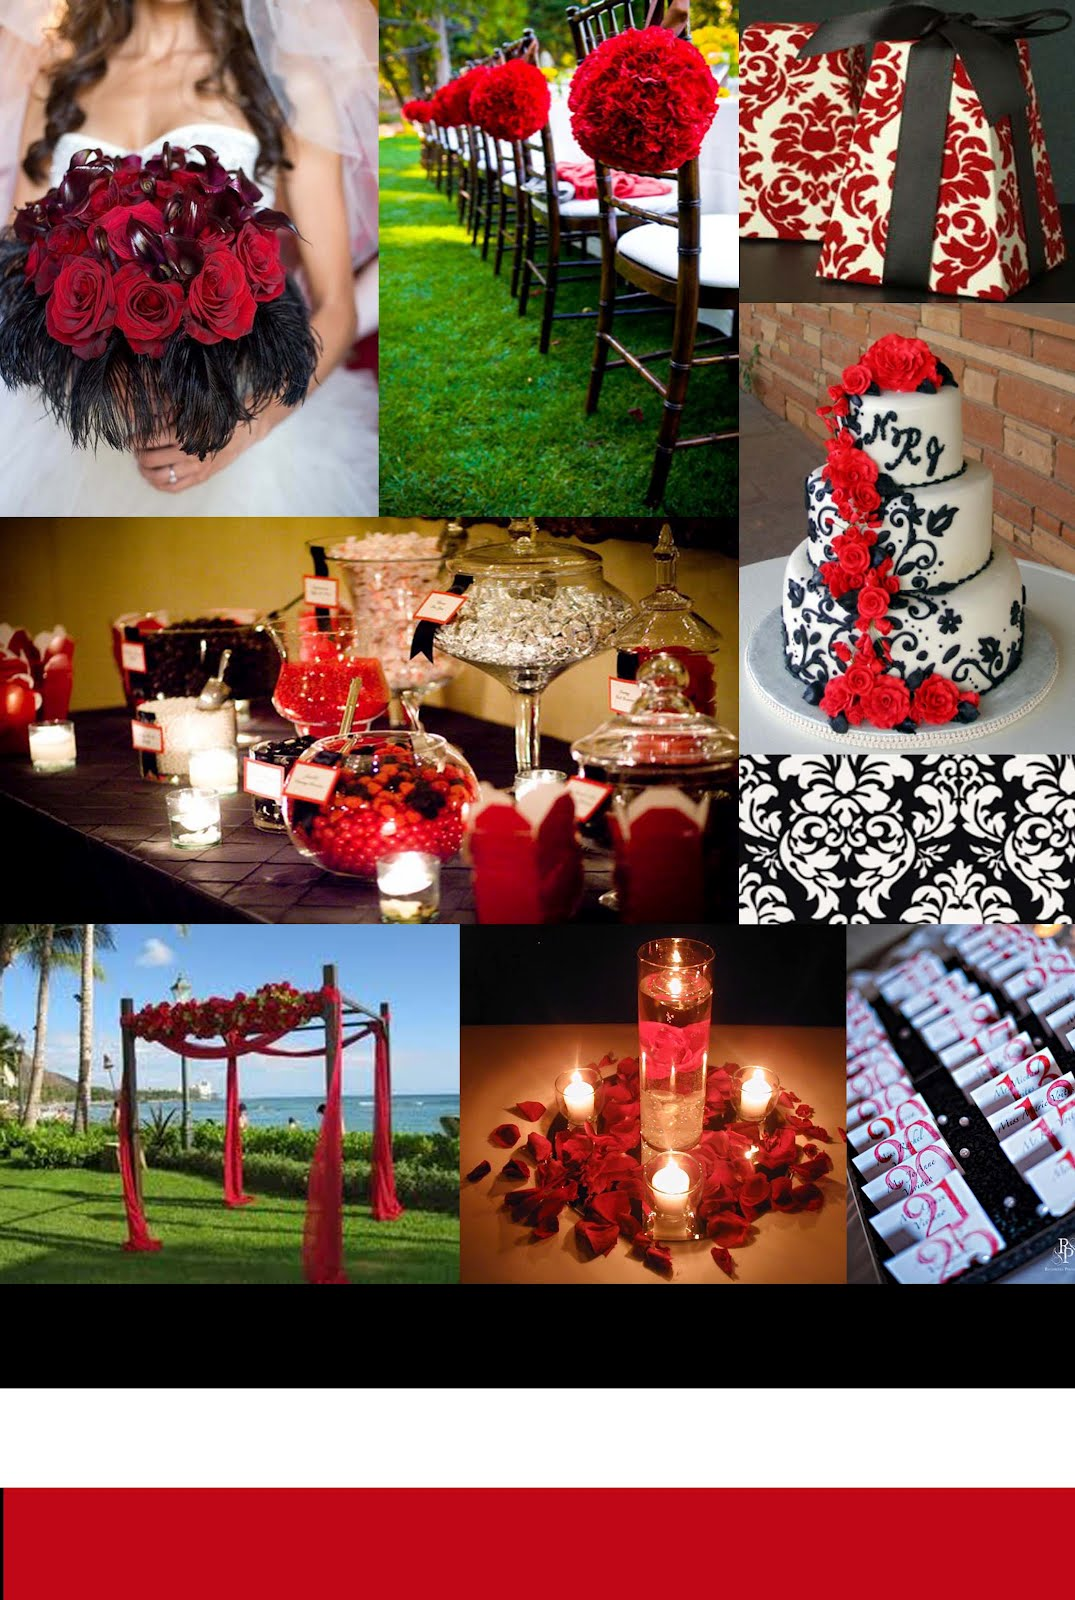 Wedding Reception Wedding Decorations Ceremony Reception Redneck Wedding Ideas